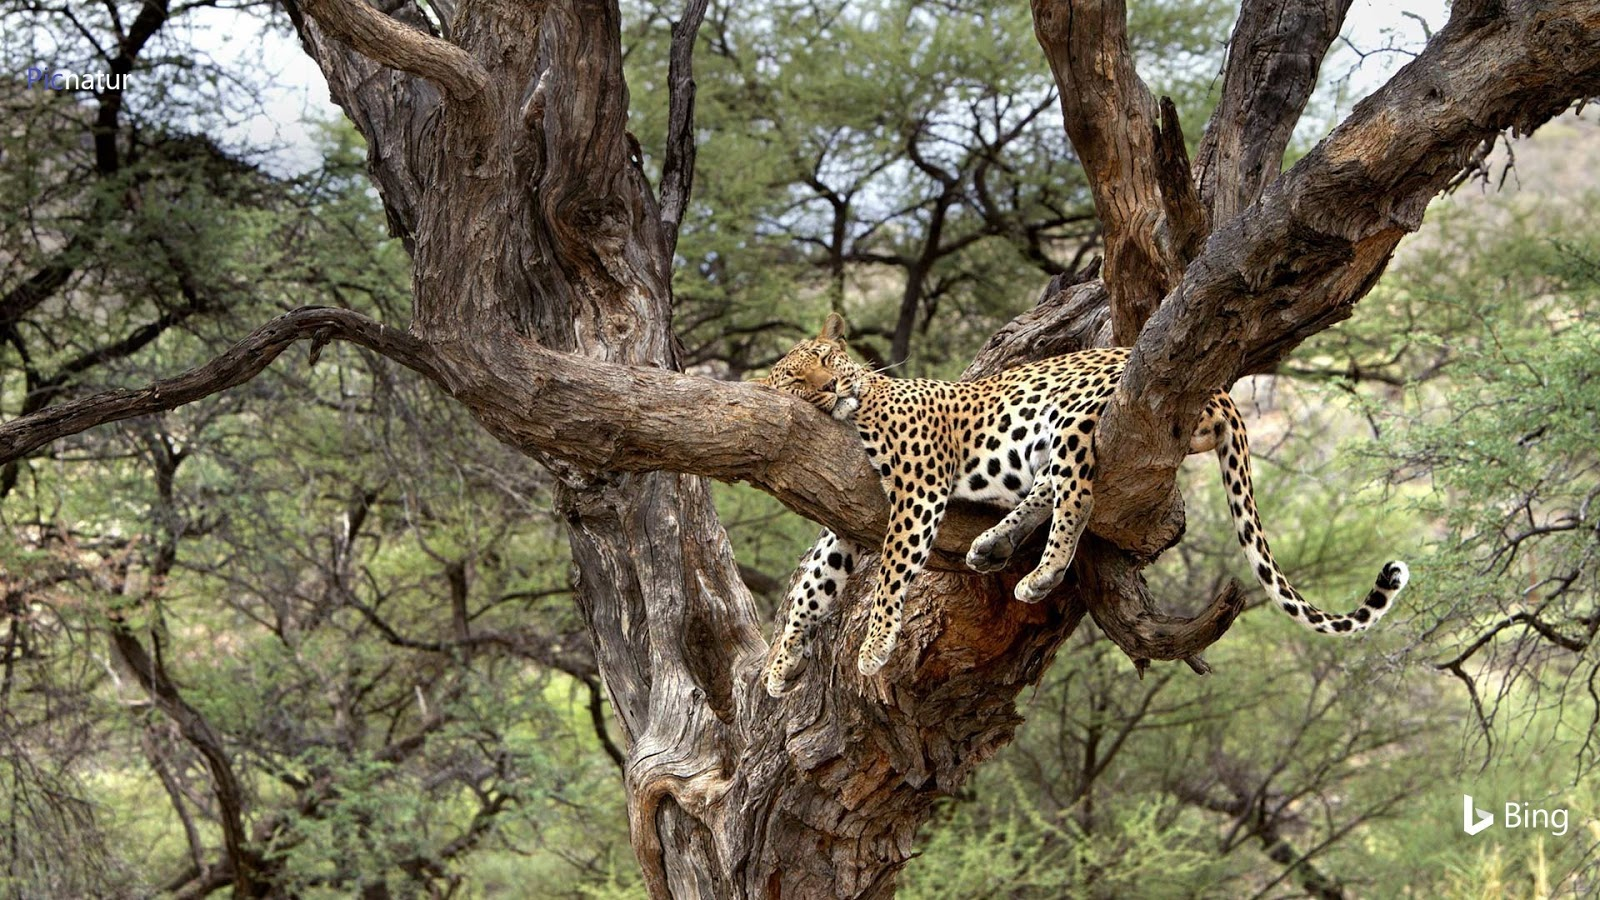 Leopard snoozing in a tree in Namibia © M. Watsonantheo/SuperStock